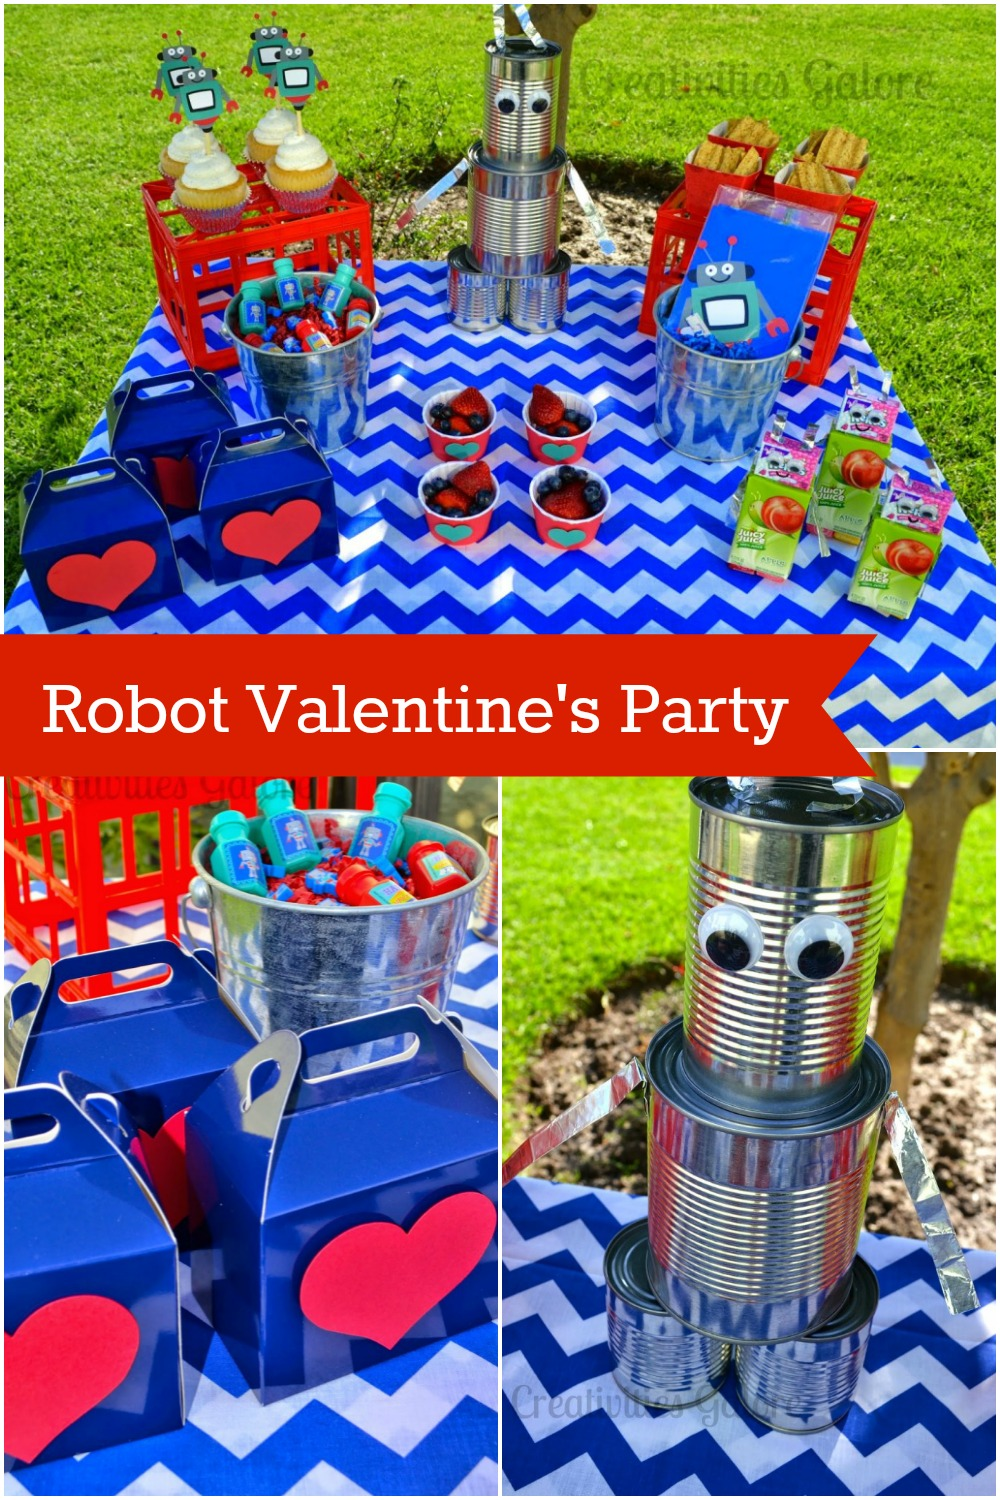 Robot Valentine's Party by Creativities Galore